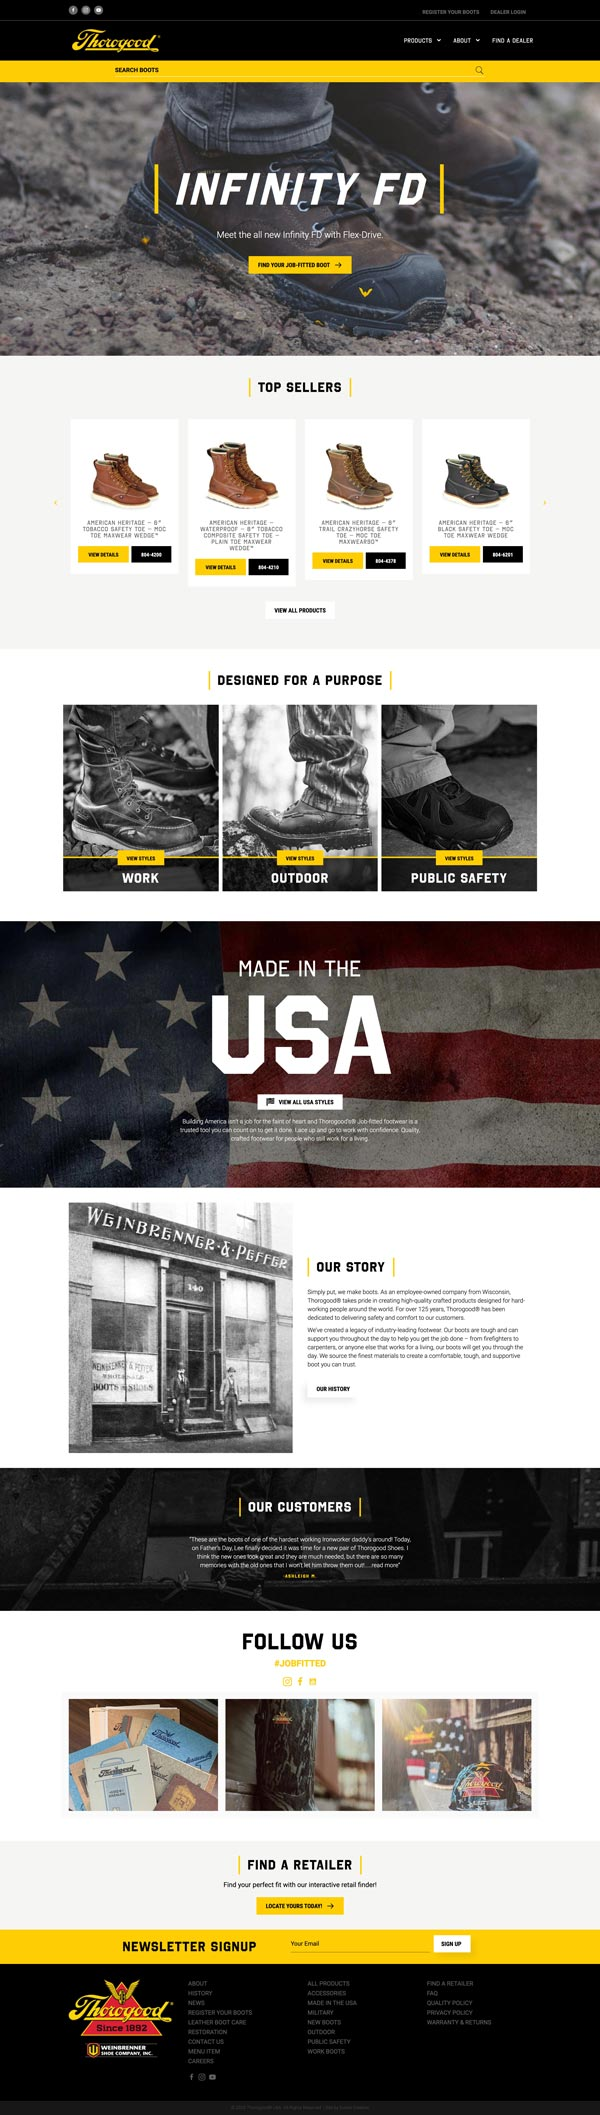 Thorogood USA Website